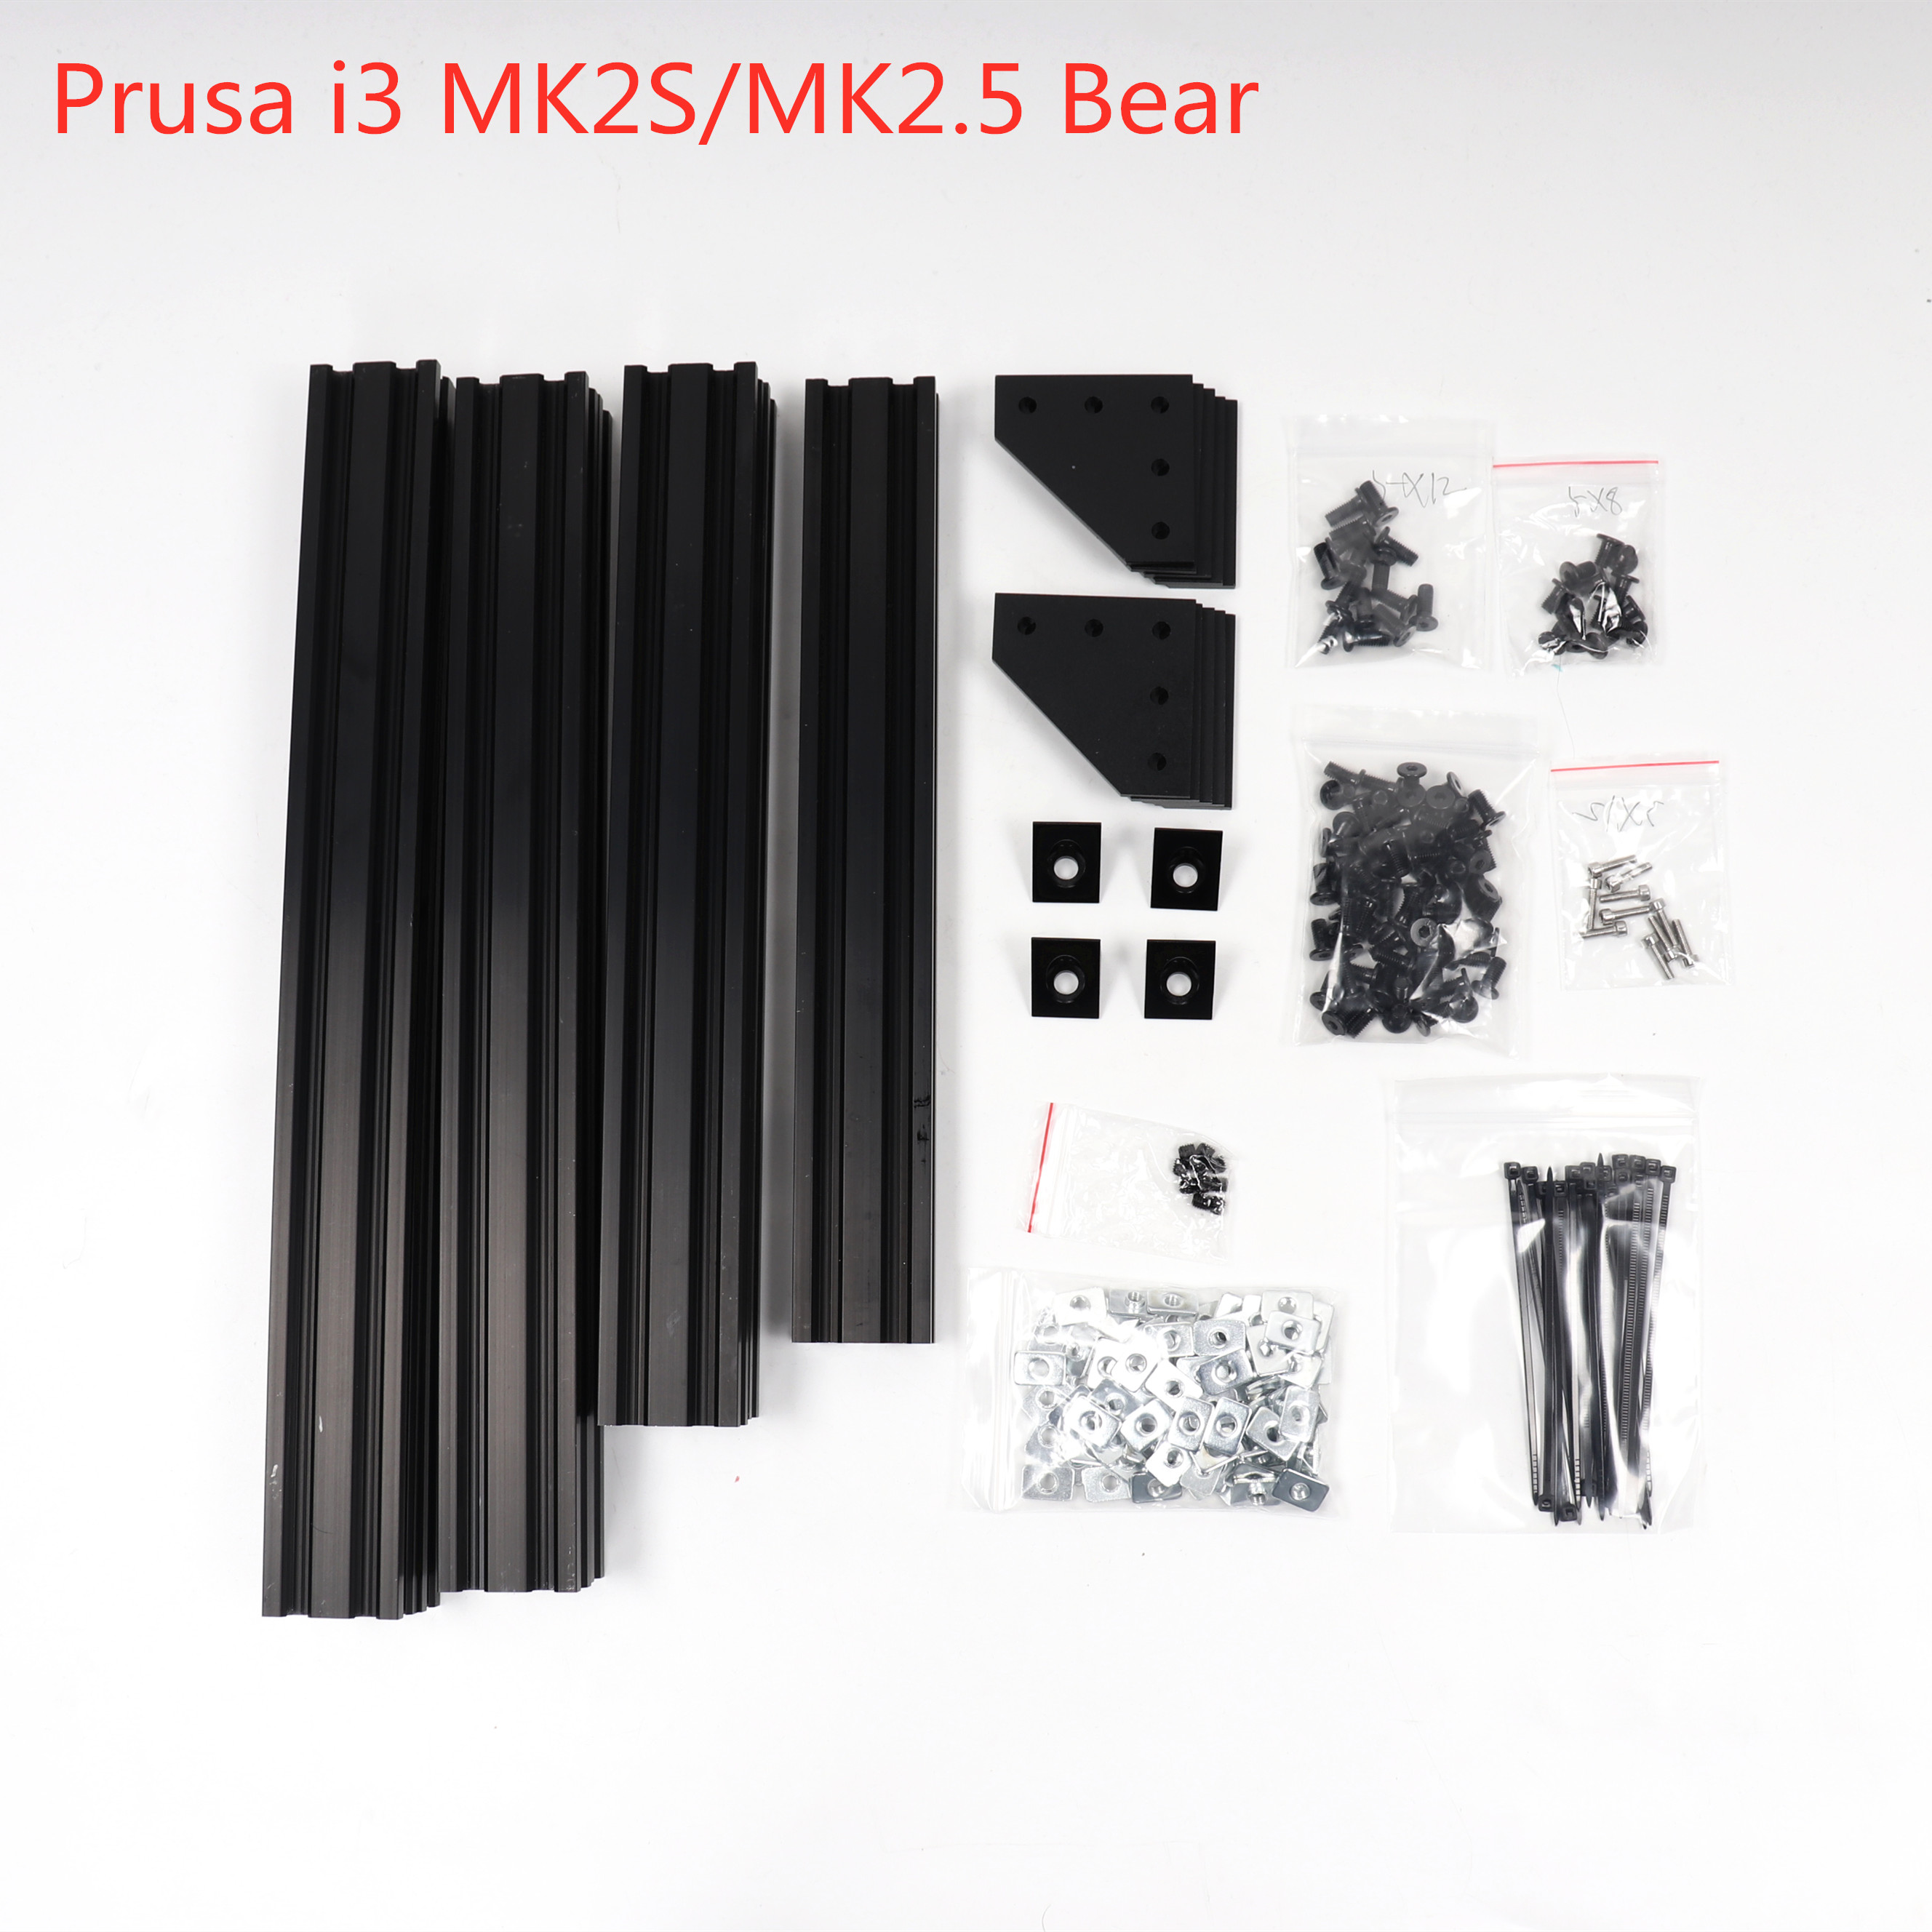 Affortable Black Prusa I3 MK2S/MK2.5  Bear Upgrade Kit 2040 Extrusions